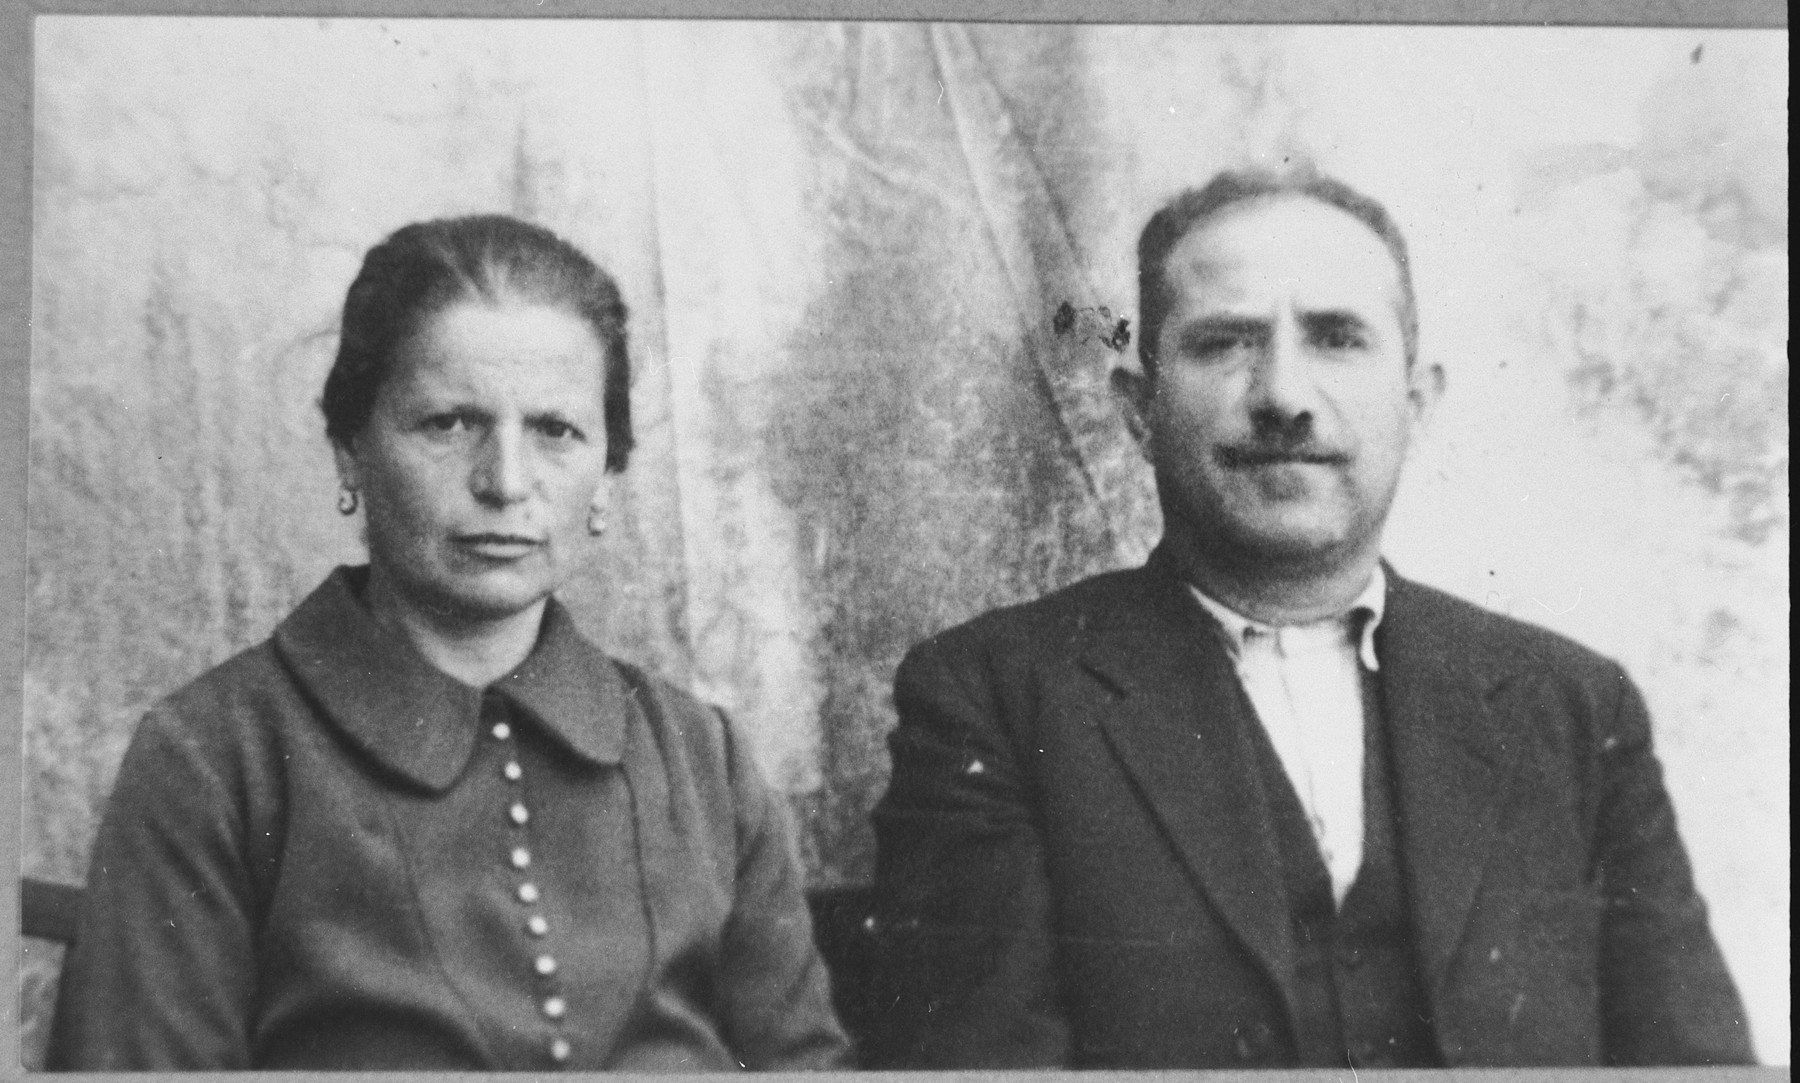 Portrait of Yuda Albocher and his wife, Ester.  He was an Innkeeper.  They lived at Sremska 13 in Bitola.